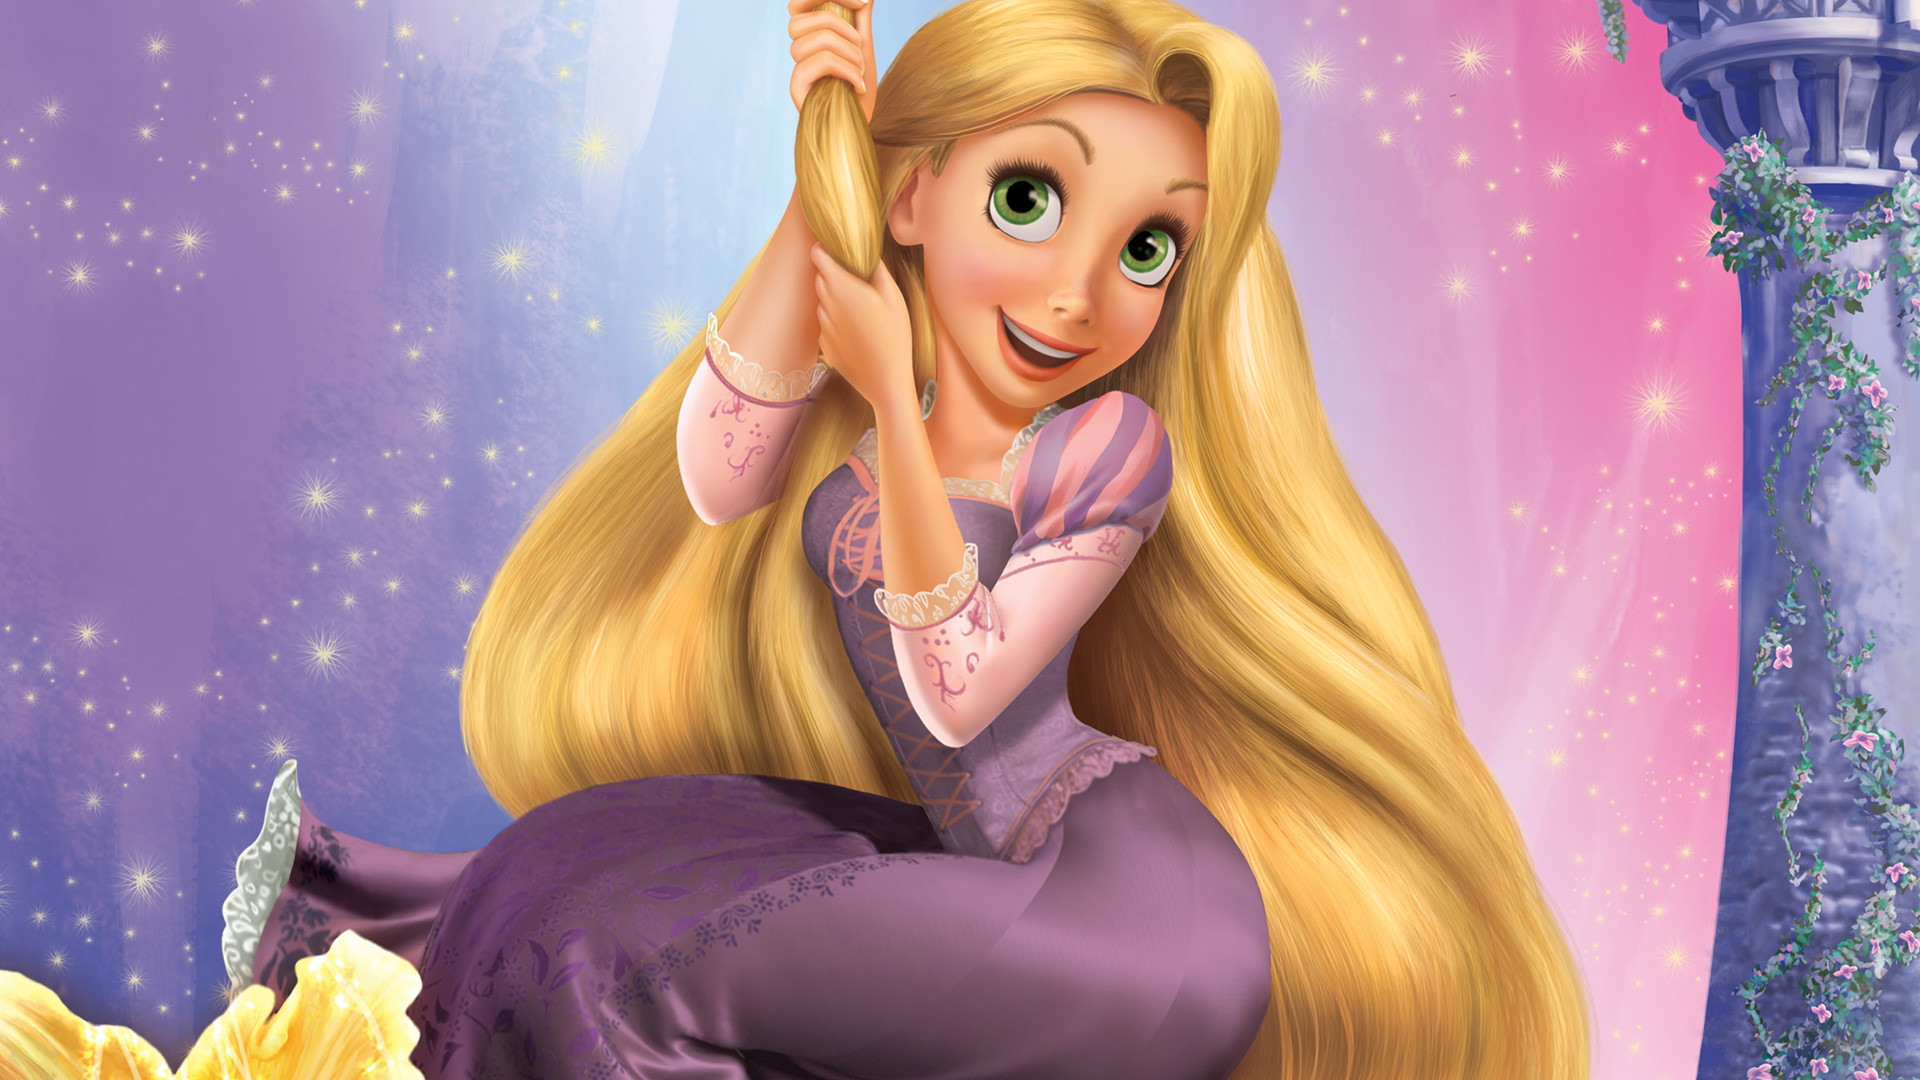 units of Tangled Wallpaper Tangled Wallpaper Wallpapers)